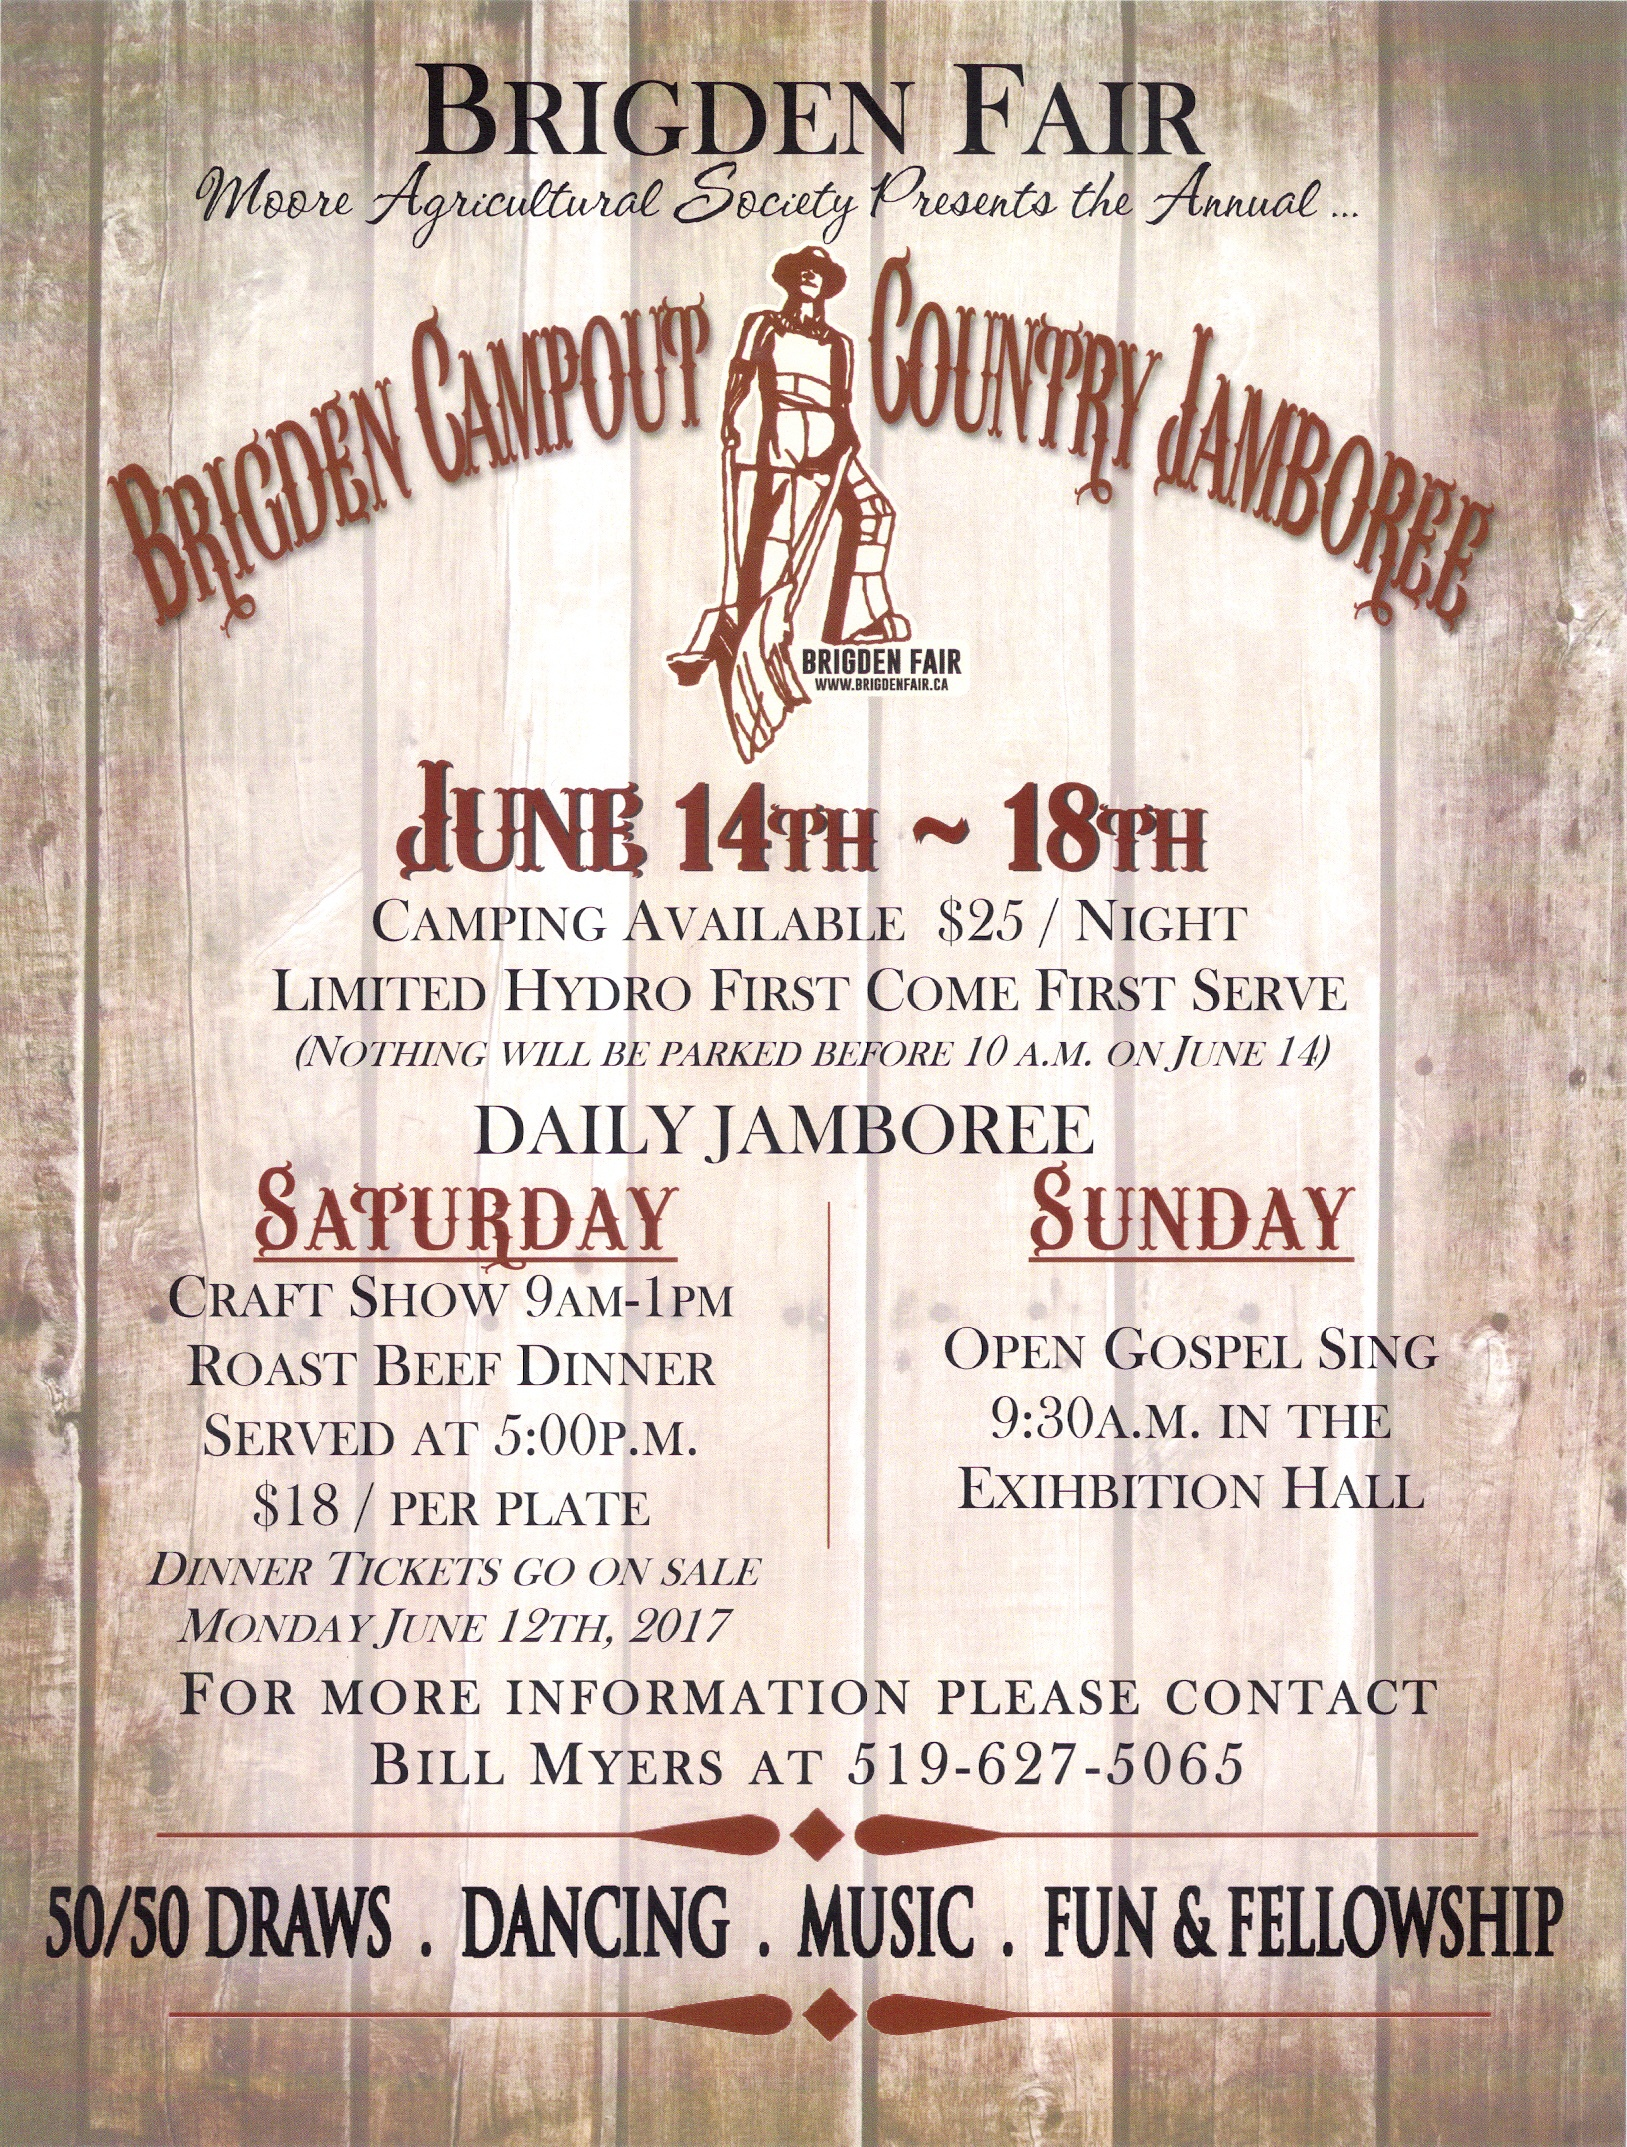 Brigden Campout Country Jamboree 2017